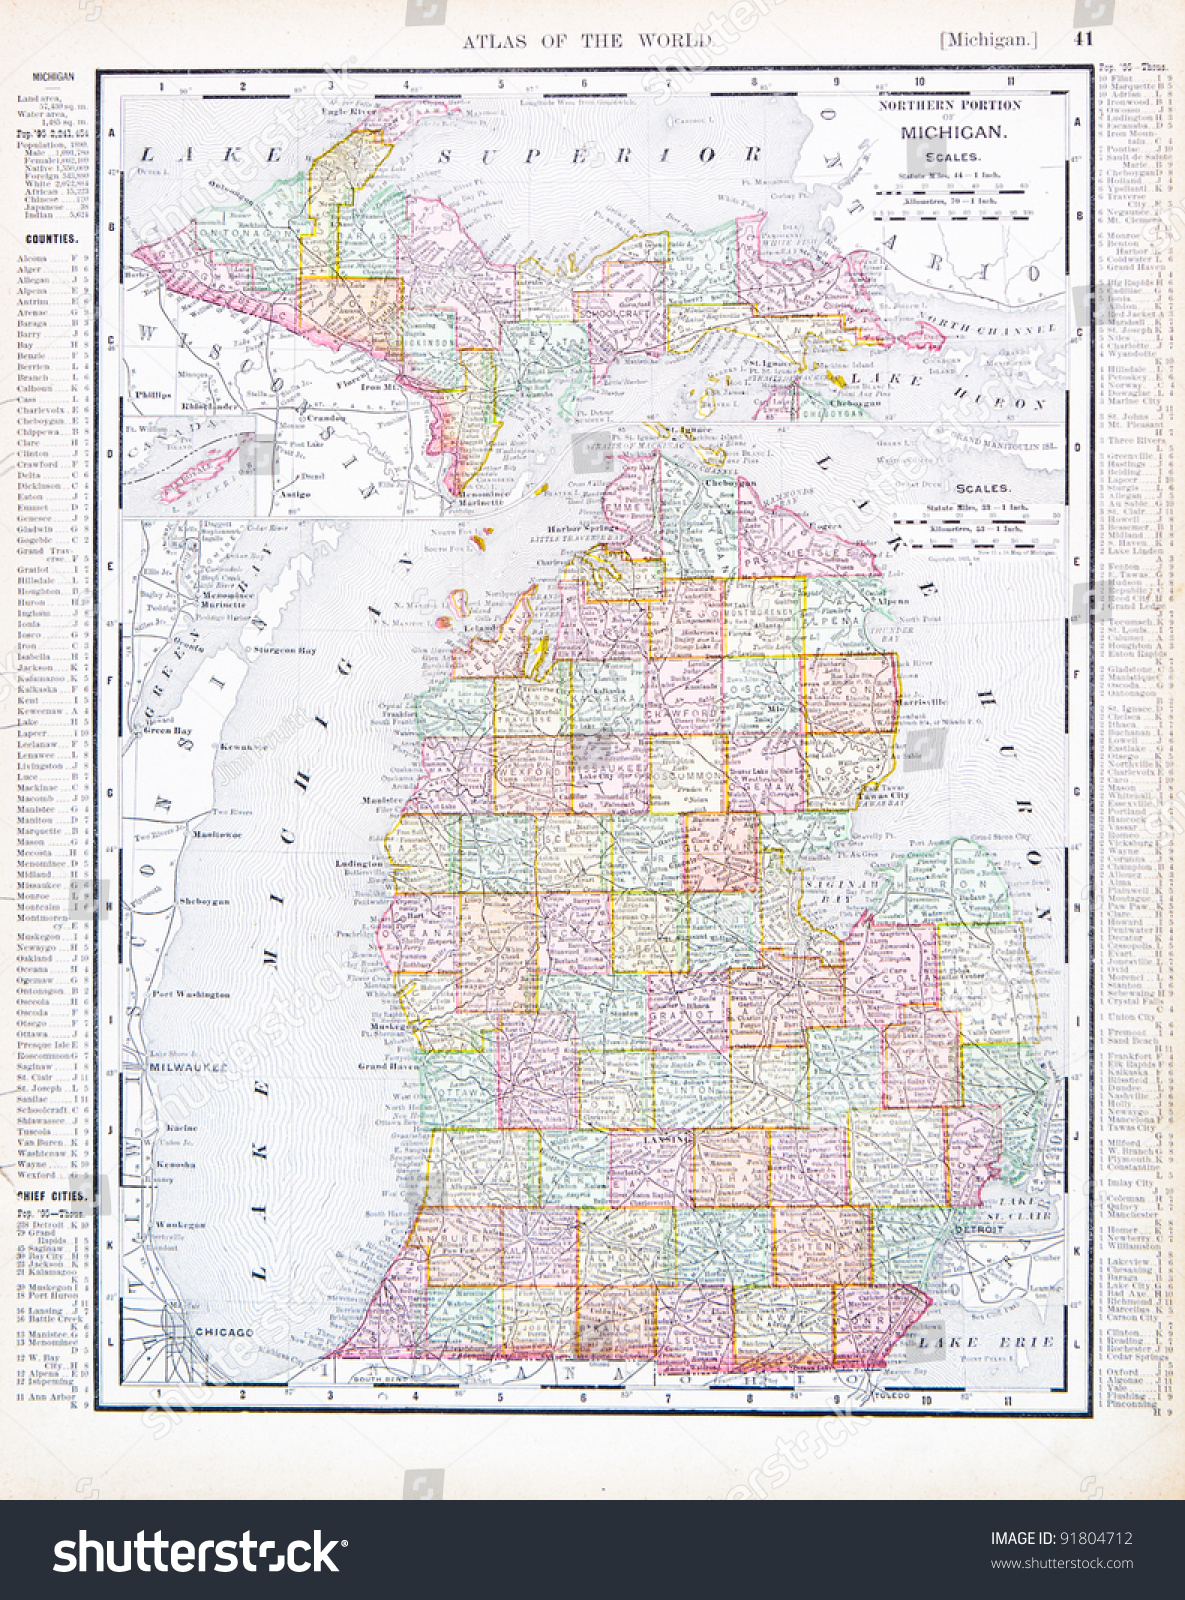 Map michigan usa spoffords atlas world stock photo 91804712 a map of michigan usa from spoffords atlas of the world printed in the gumiabroncs Images